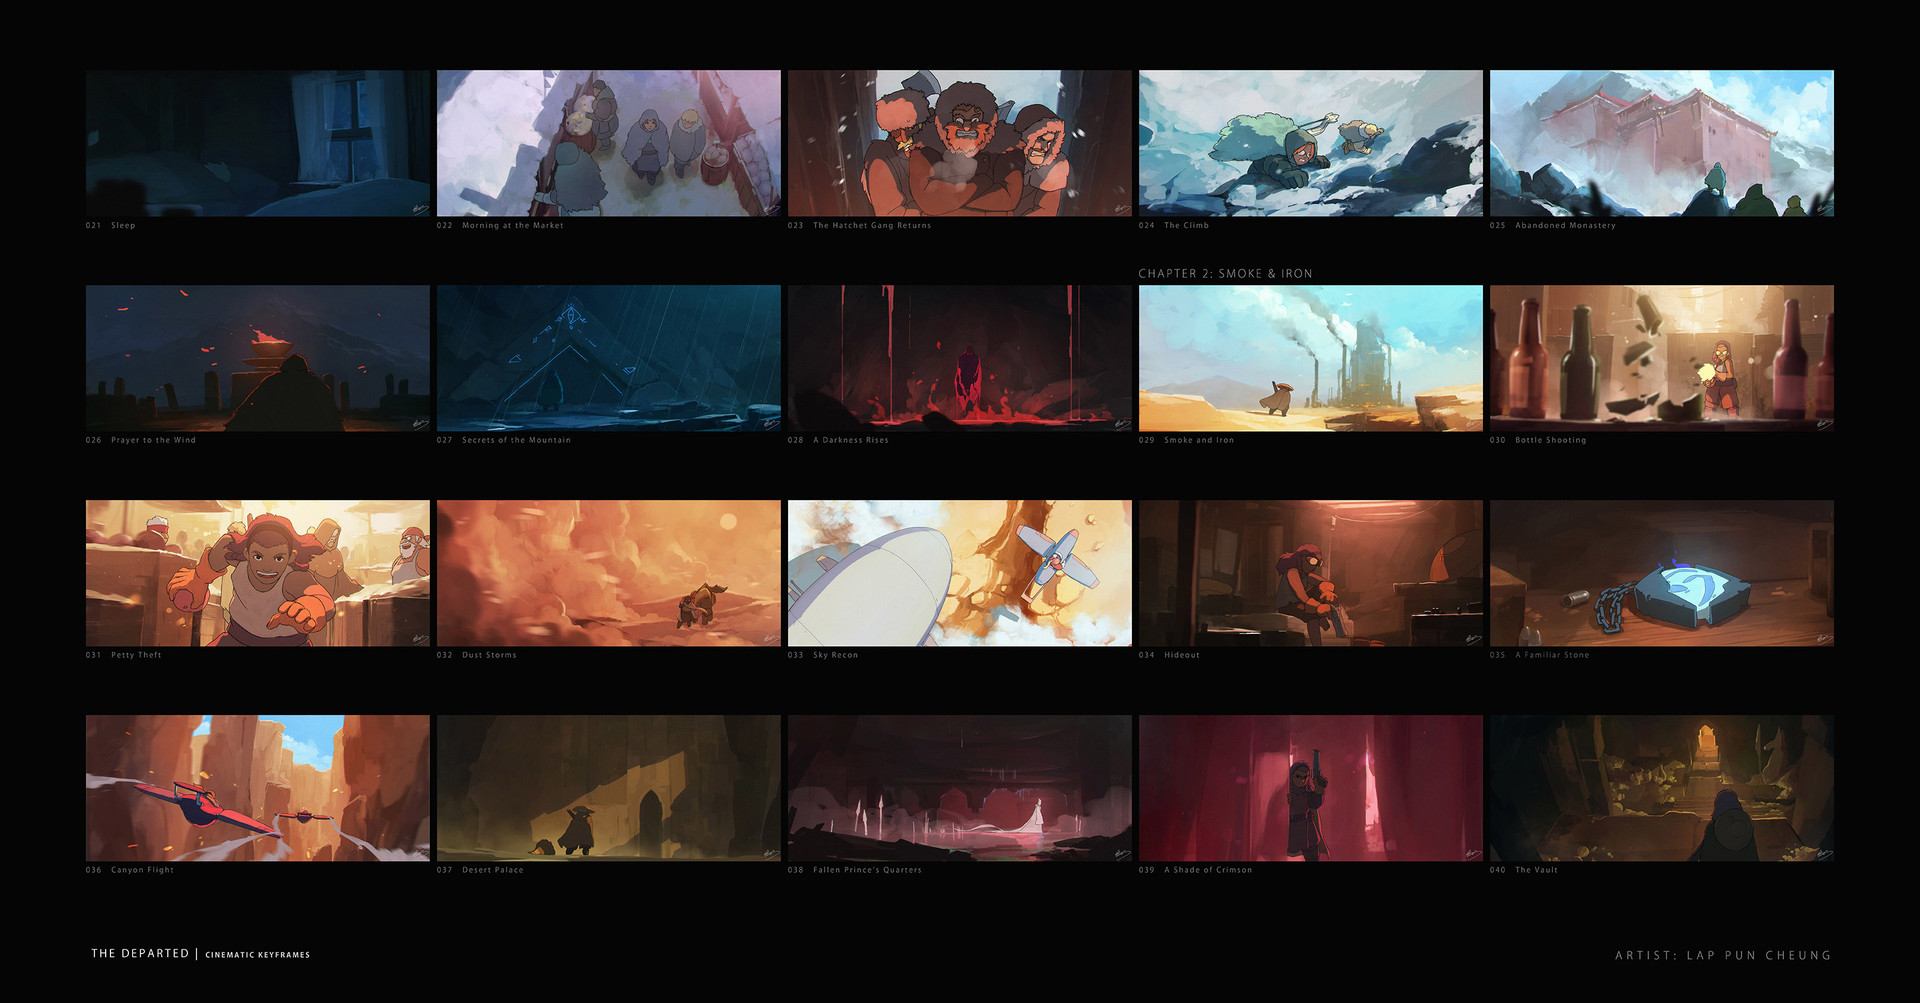 Lap pun cheung cinematic collection keyframes 002 online